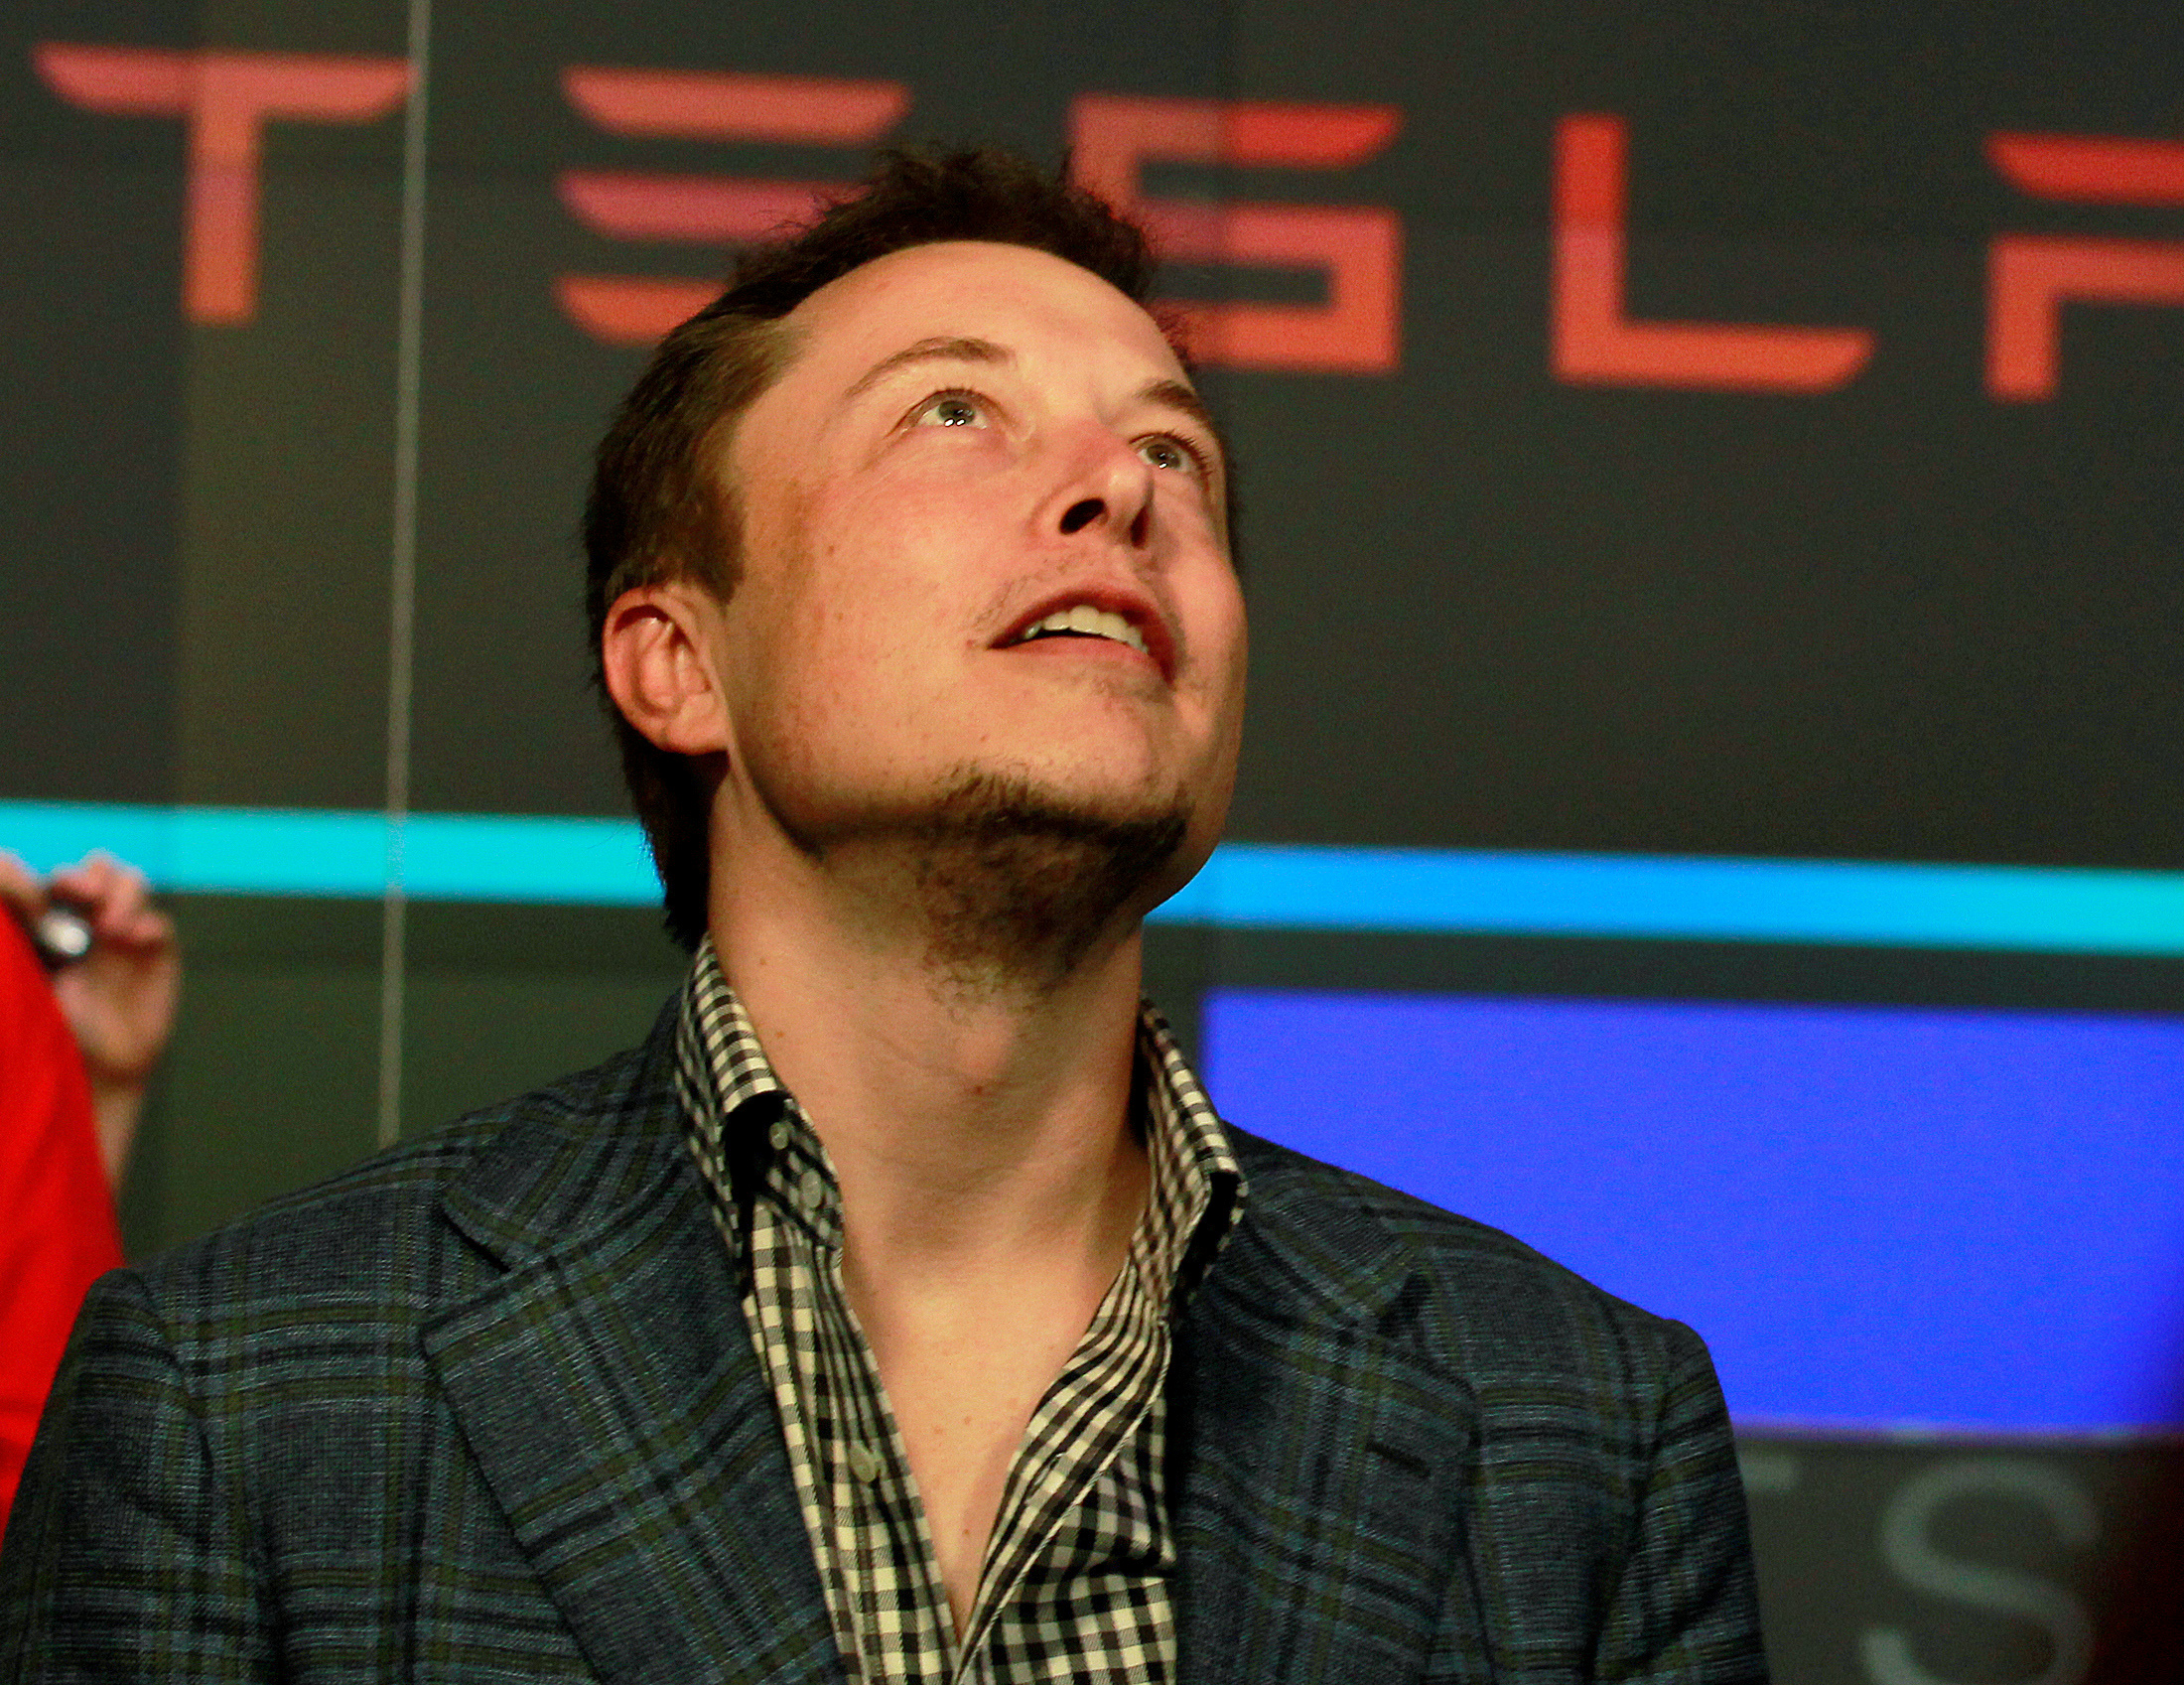 CEO of Tesla Motors Elon Musk reacts following the company's initial public offering at the NASDAQ market in New York June 29, 2010. REUTERS/Brendan McDermid/File Photo